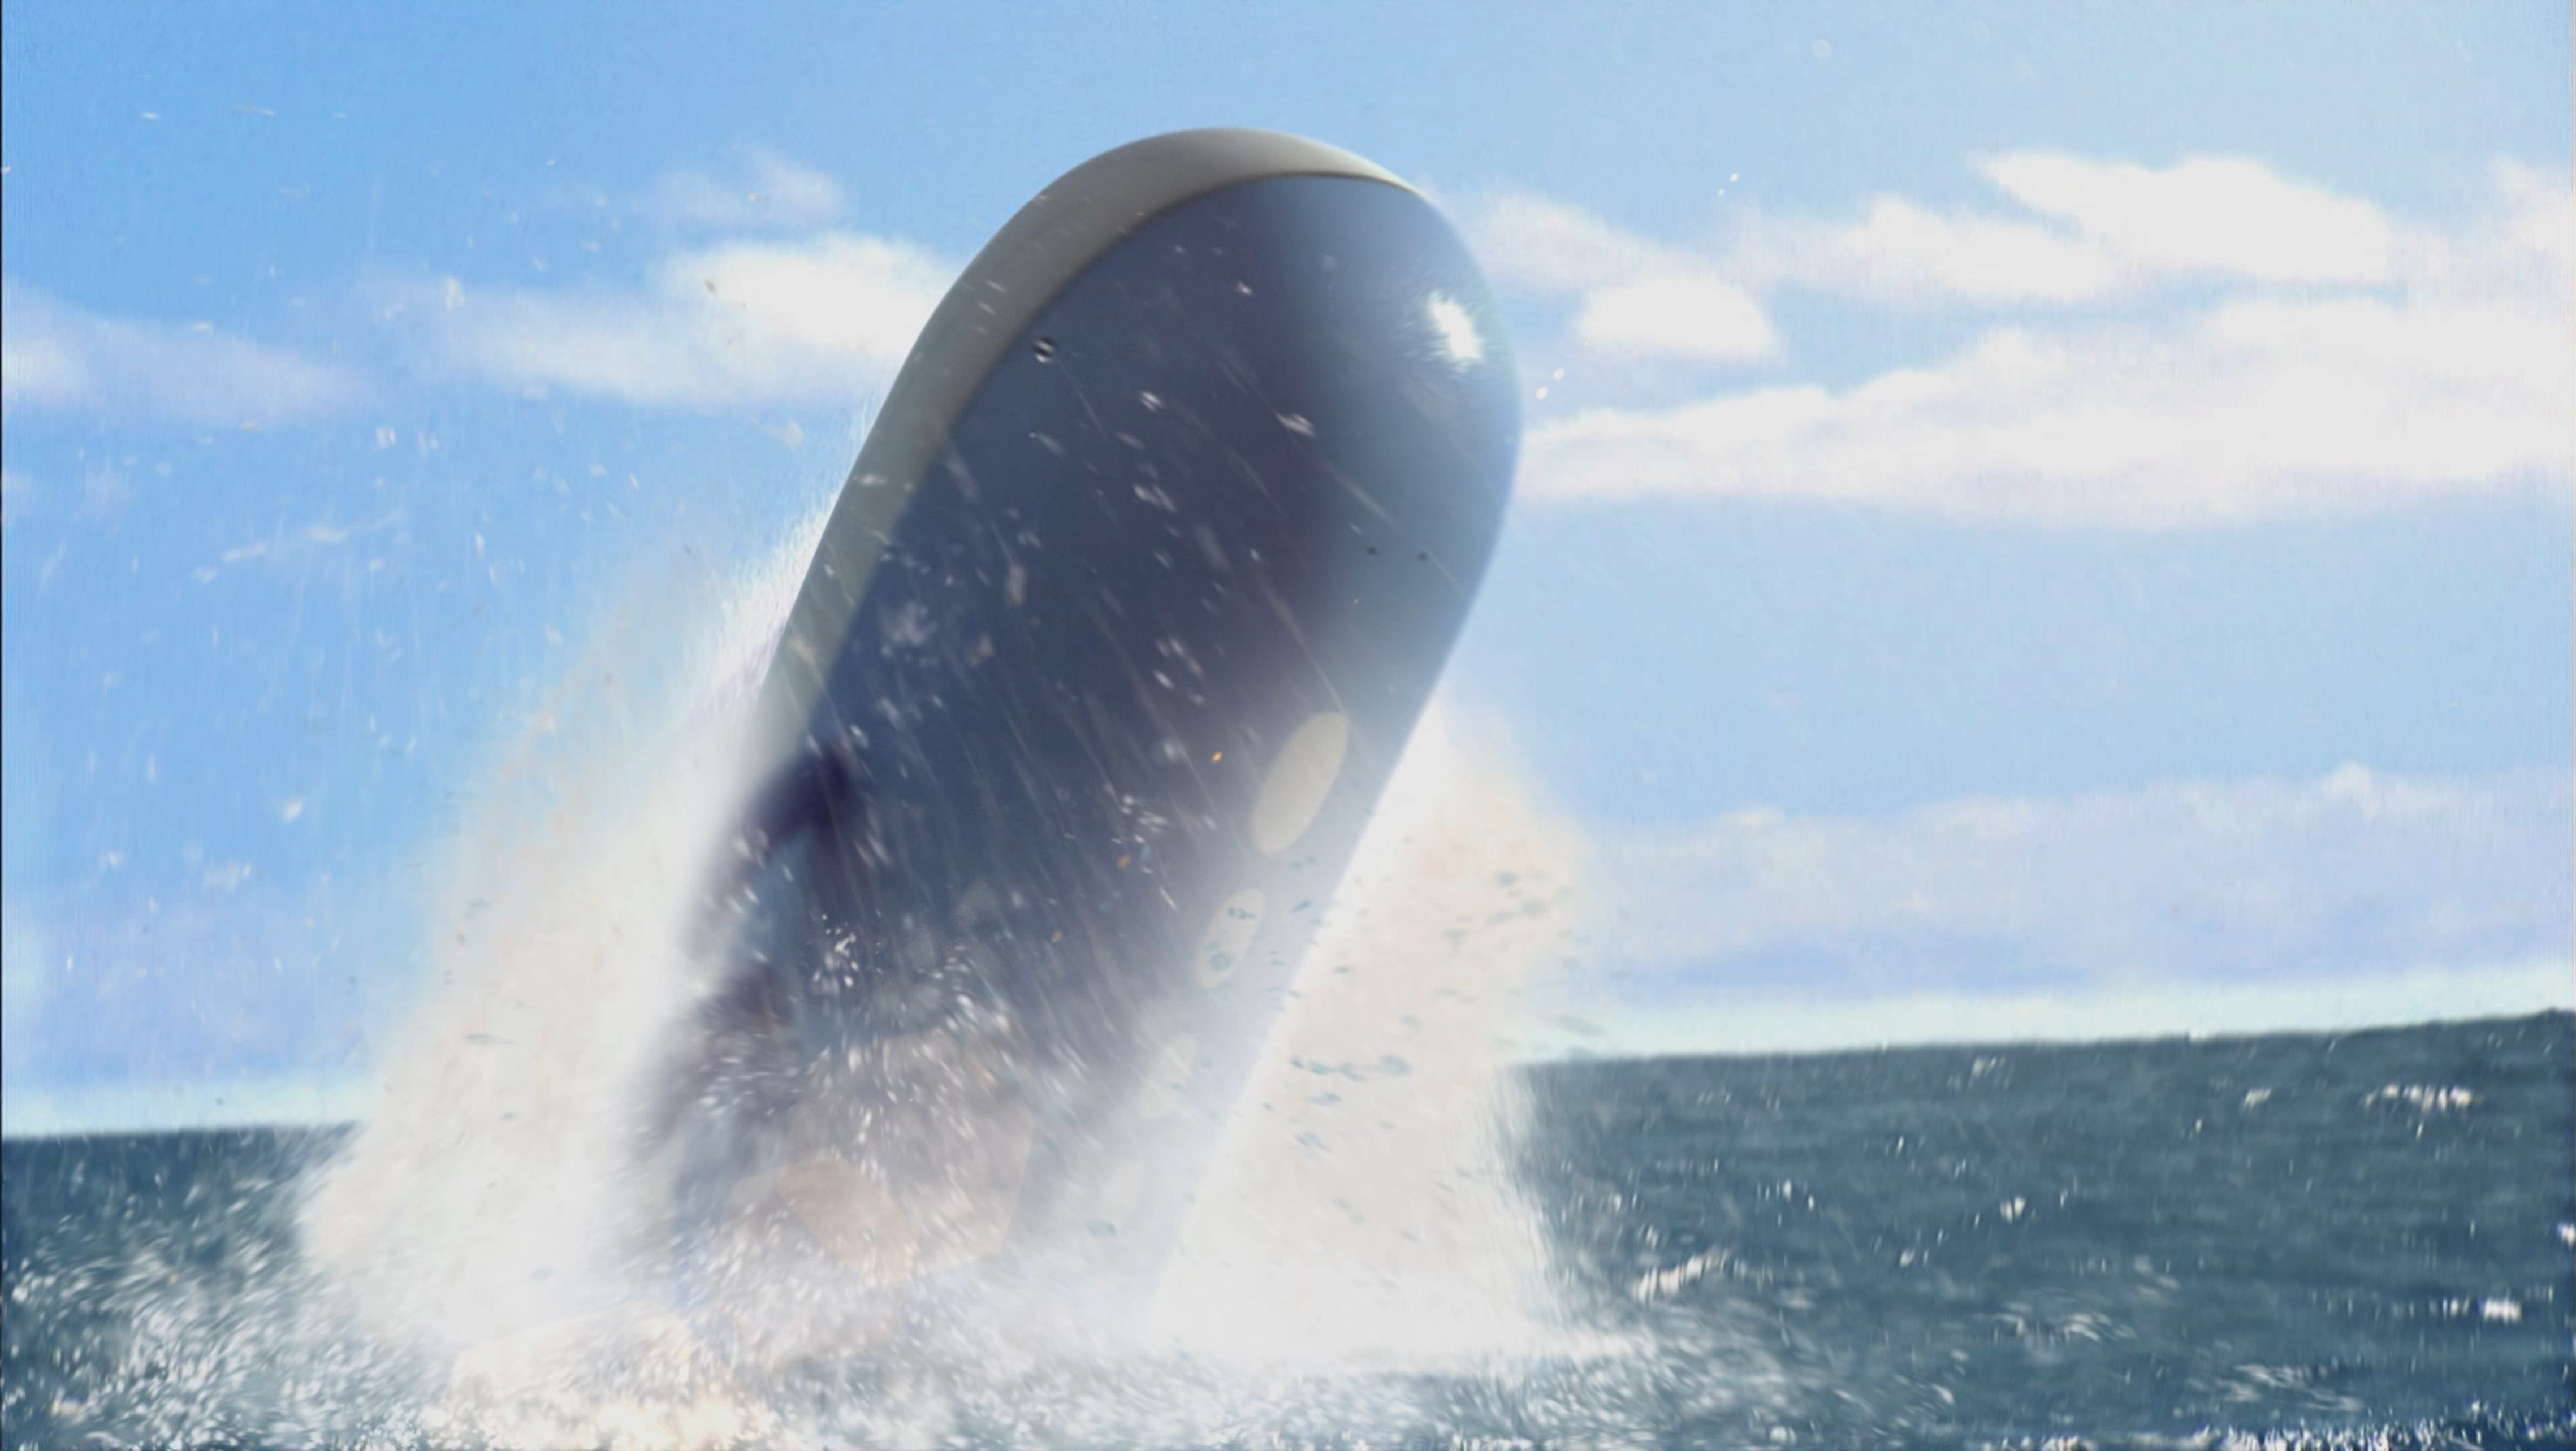 The majestic Wailord leaps above the waves